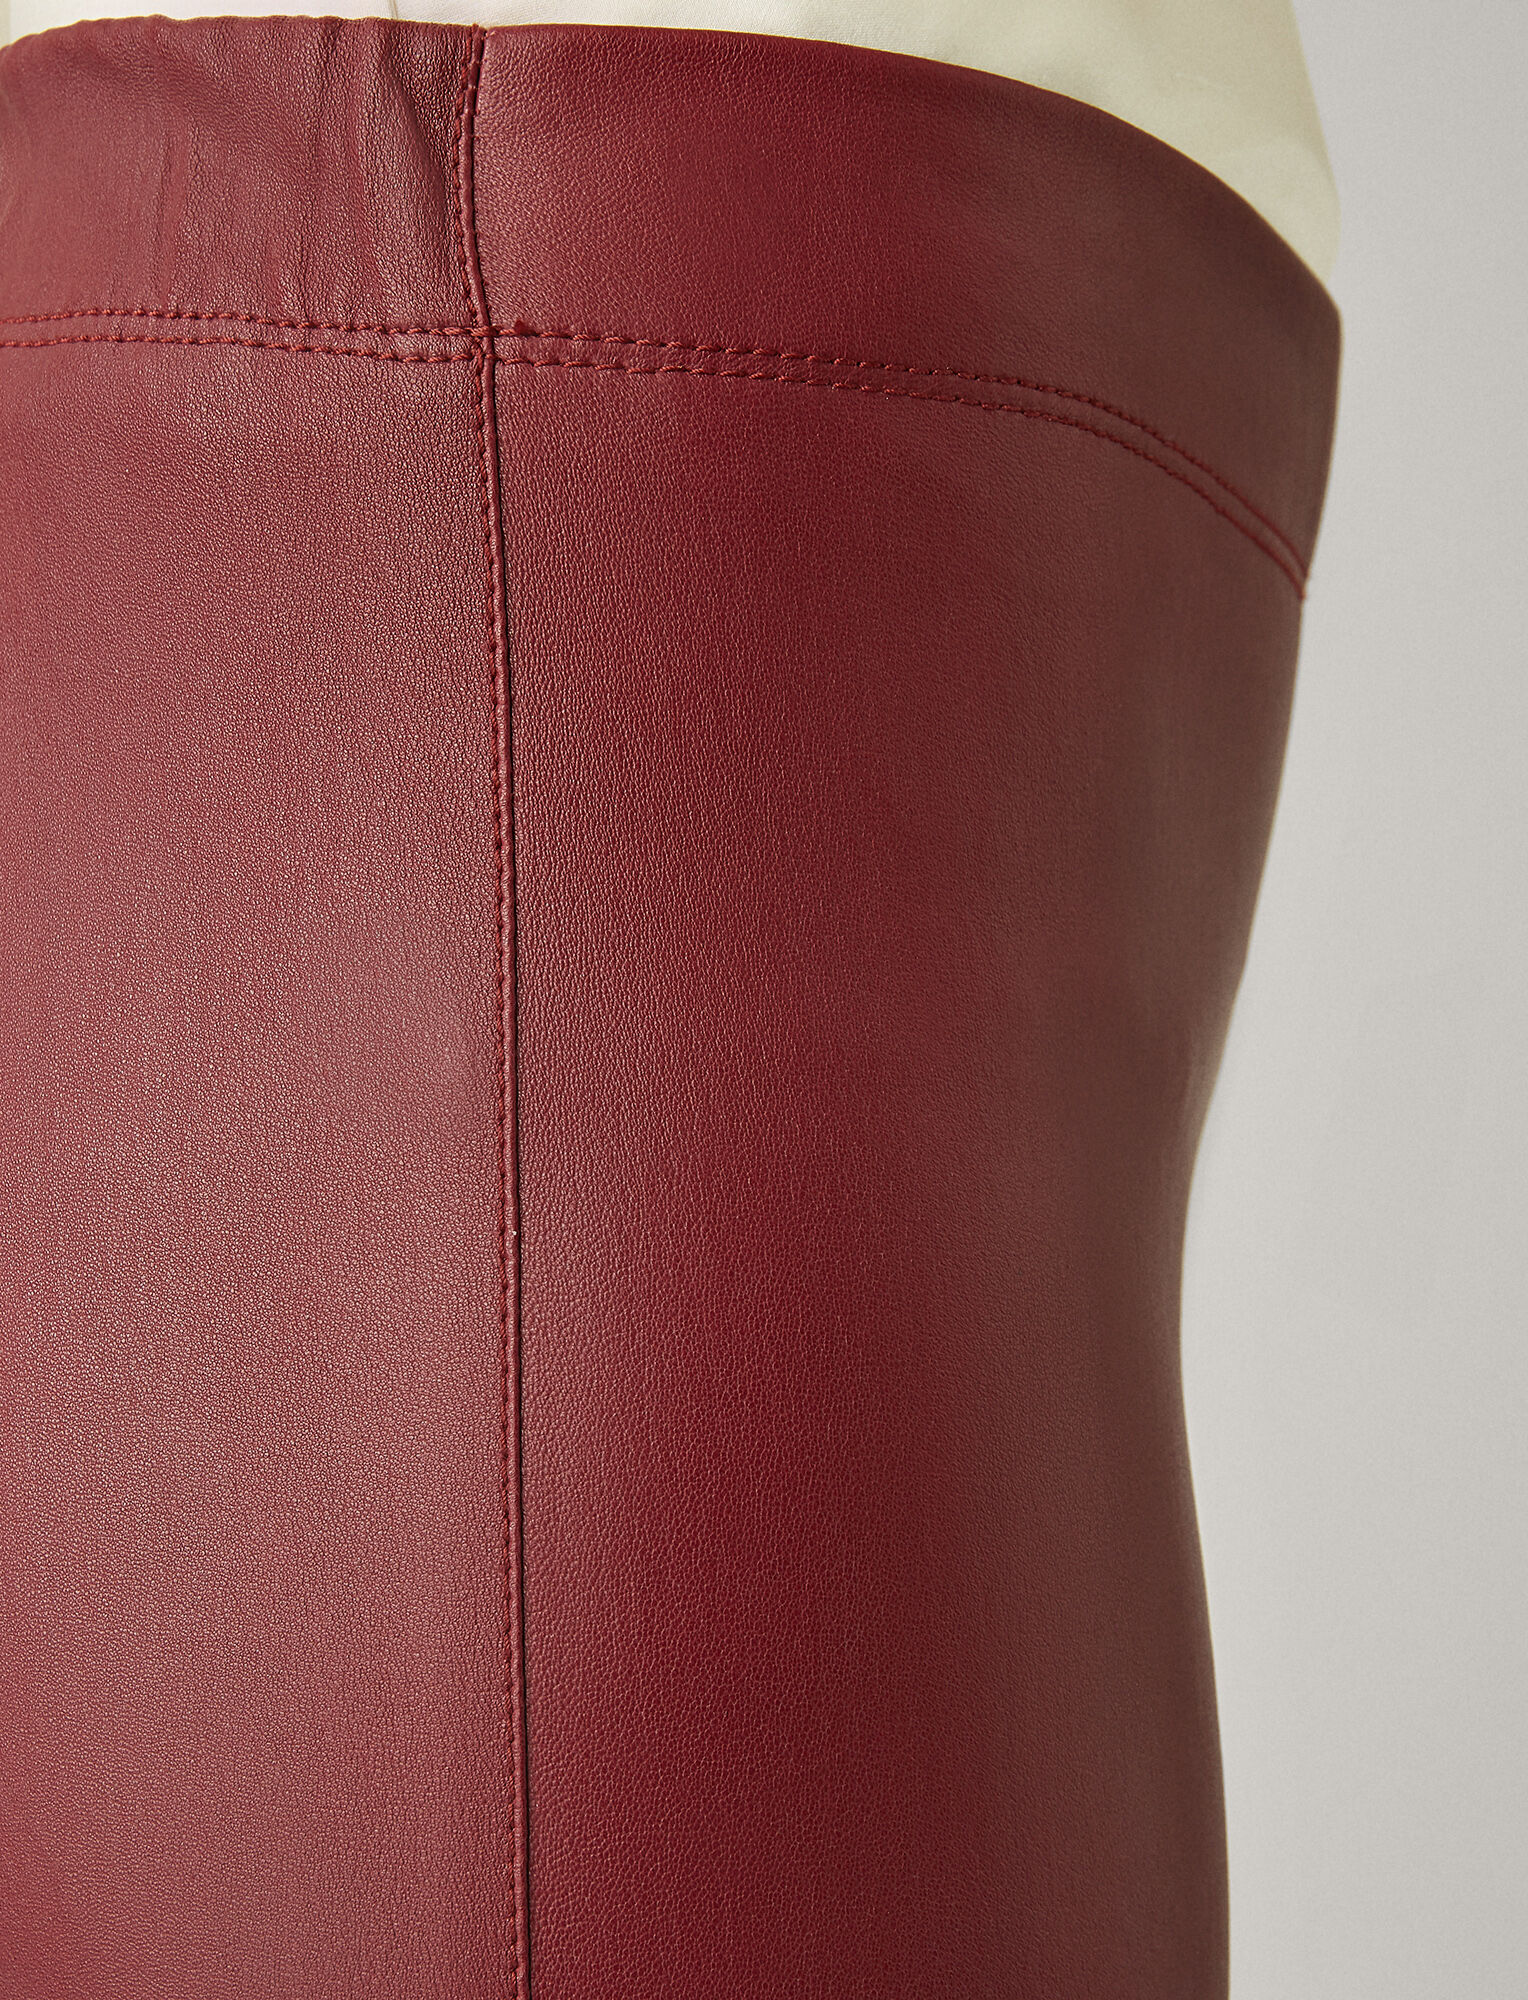 Joseph, Stretch Leather Legging, in GARNET